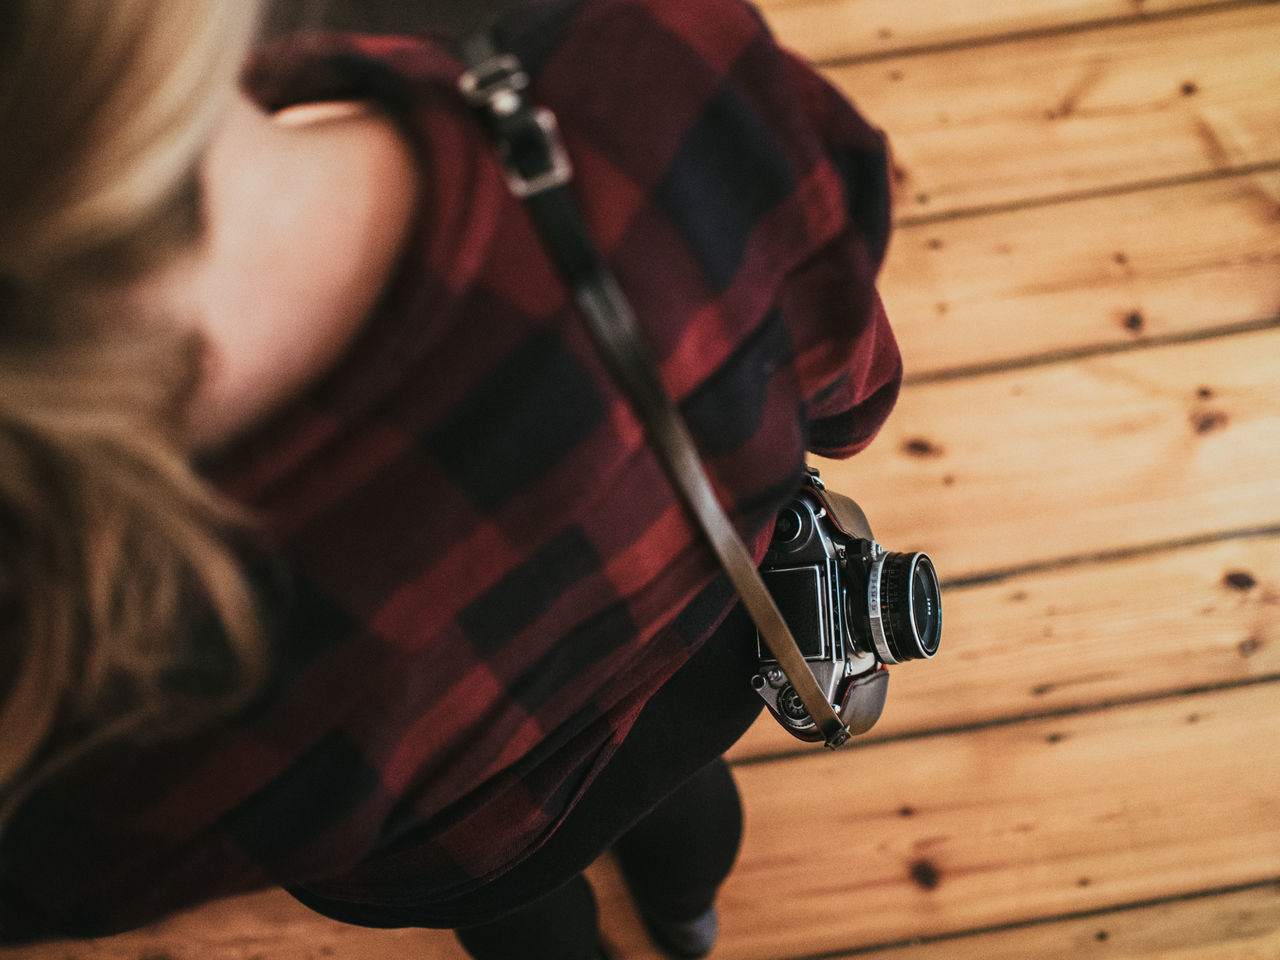 High angle view of woman standing with camera on hardwood floor